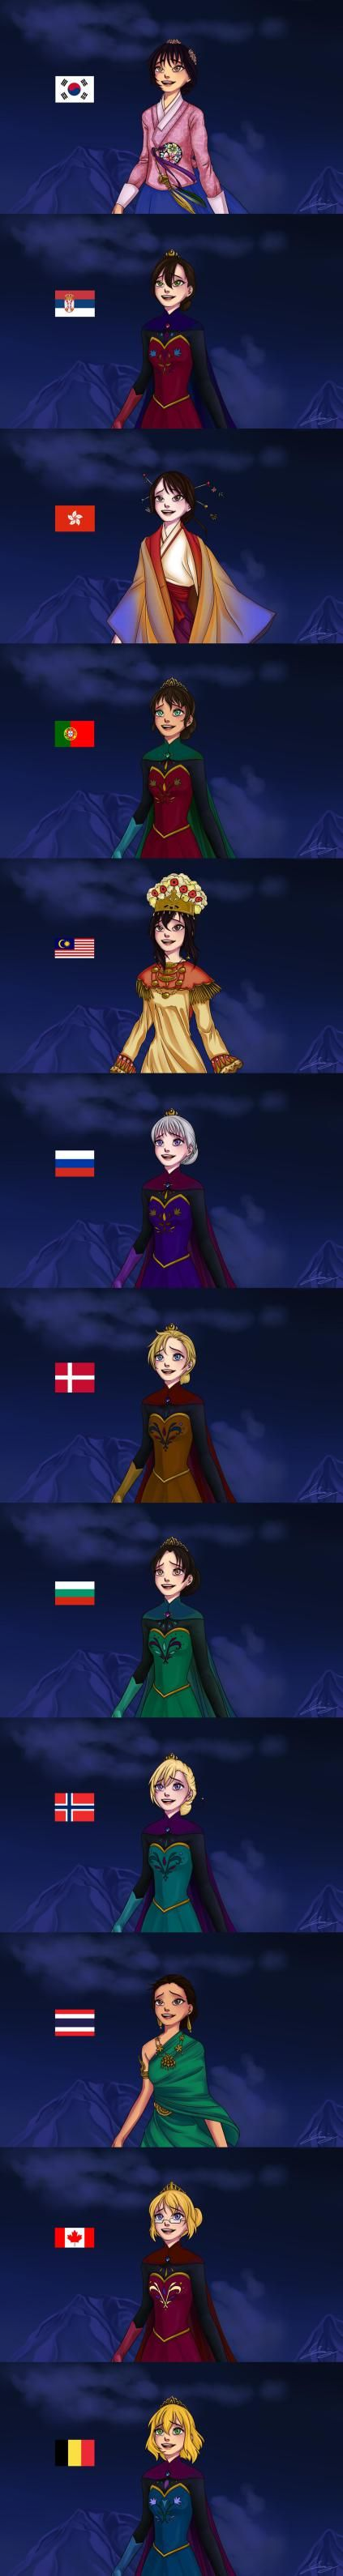 most people thin this is Elsa with different ethnic groups but it's Elsa mixed with hetalia girls